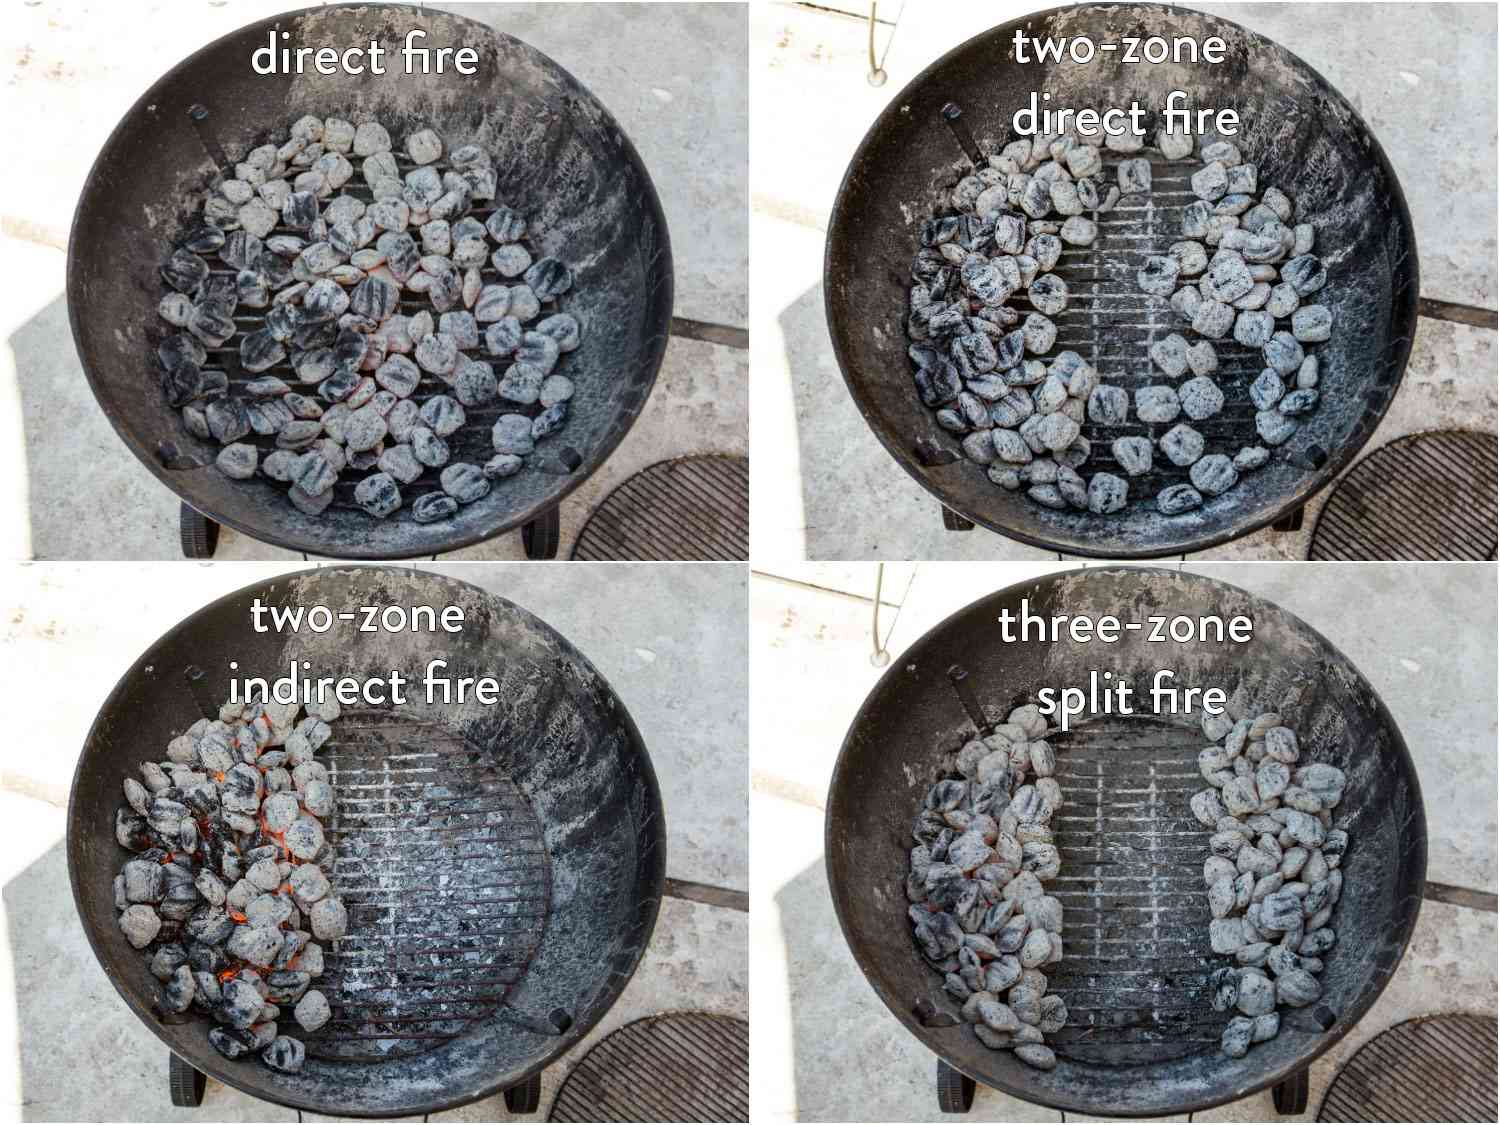 20160415-grilling-vicky-wasik-coal-placement-text1.jpg